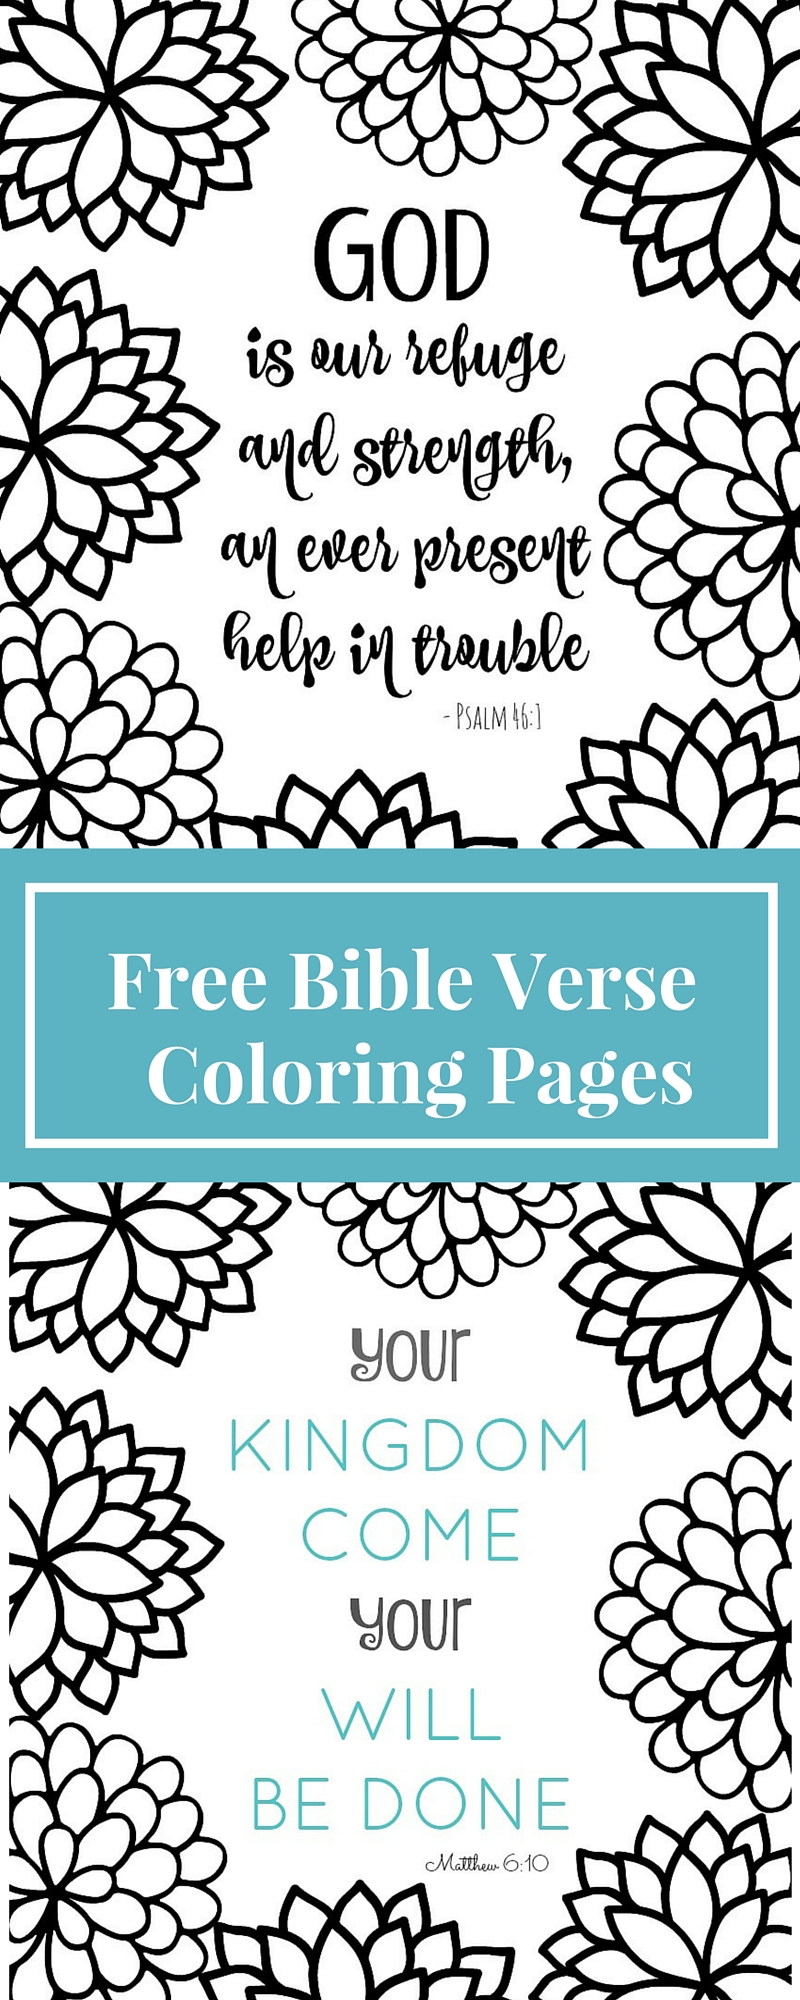 Free coloring pages bible - Bible Verse Coloring Pages